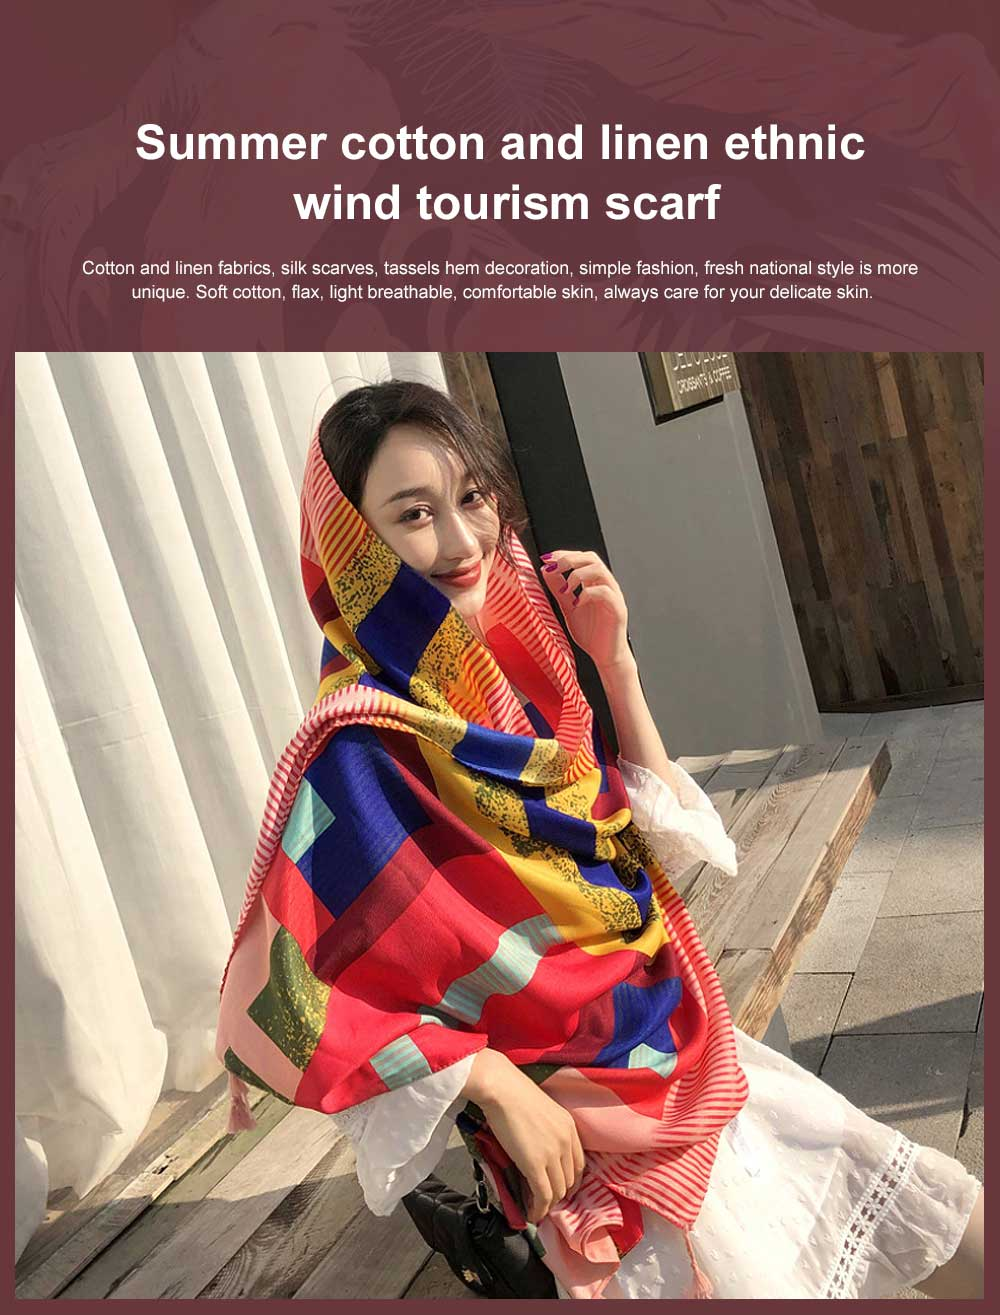 Summer cotton and linen ethnic wind tourism scarf, Holiday sunscreen scarf, Lady's Air Conditioning Shawl 0